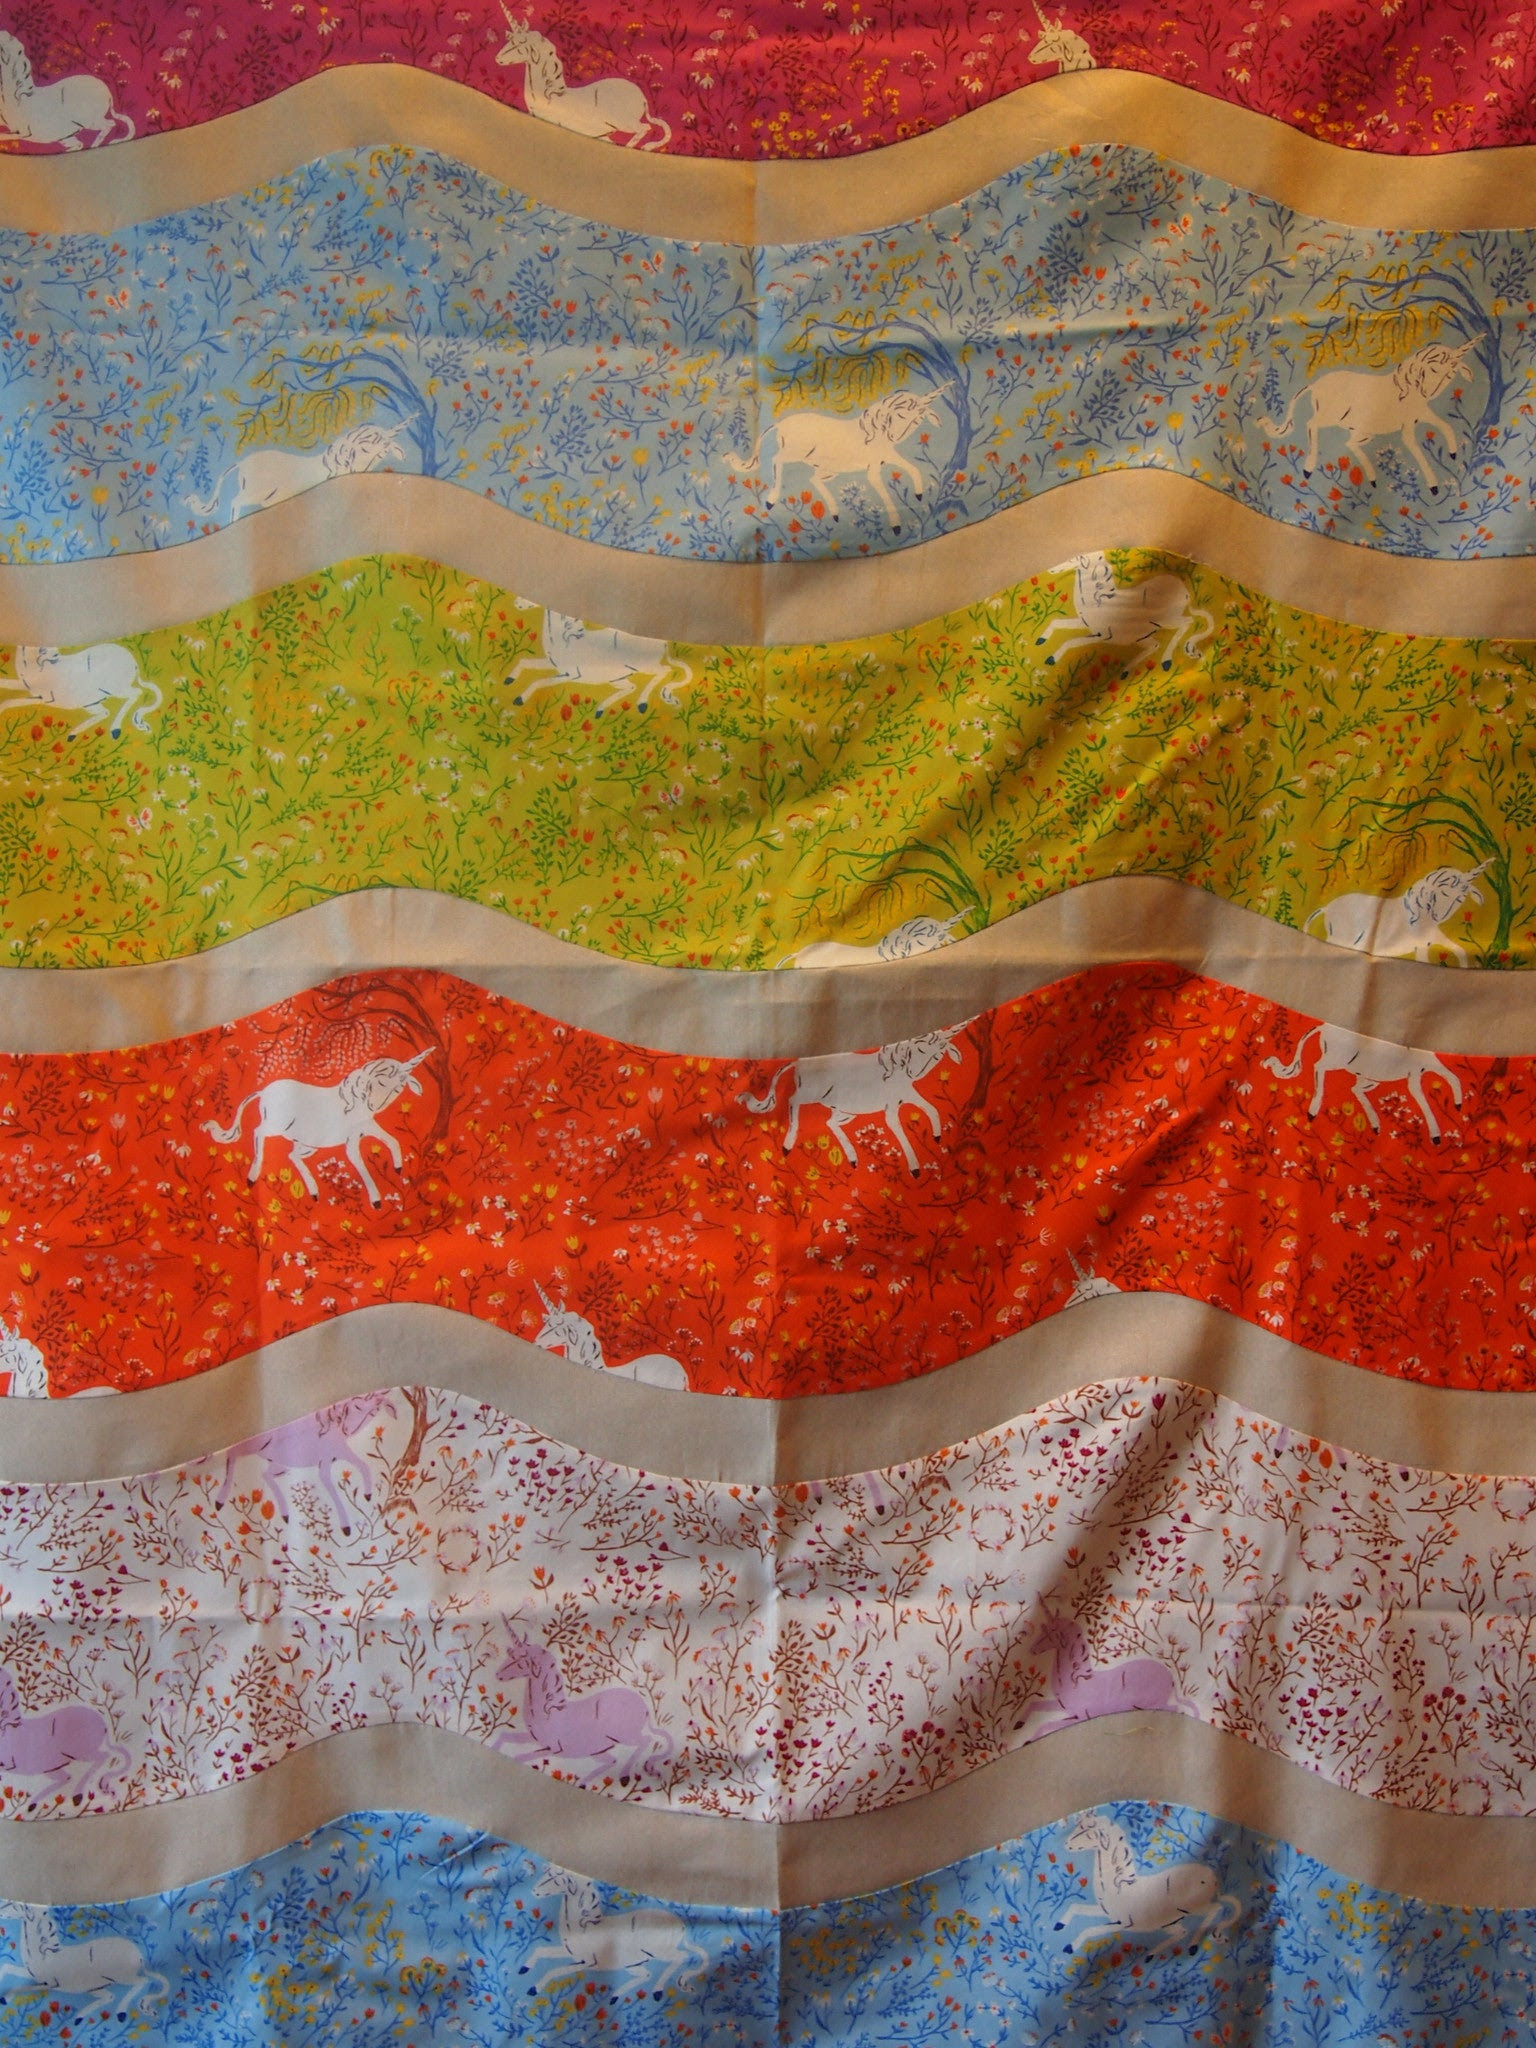 By Land or By Sea Quilt Top (Intro to Curves) - Adult - Sunday, October 19th, 12:00 - 5:00 pm - All Levels